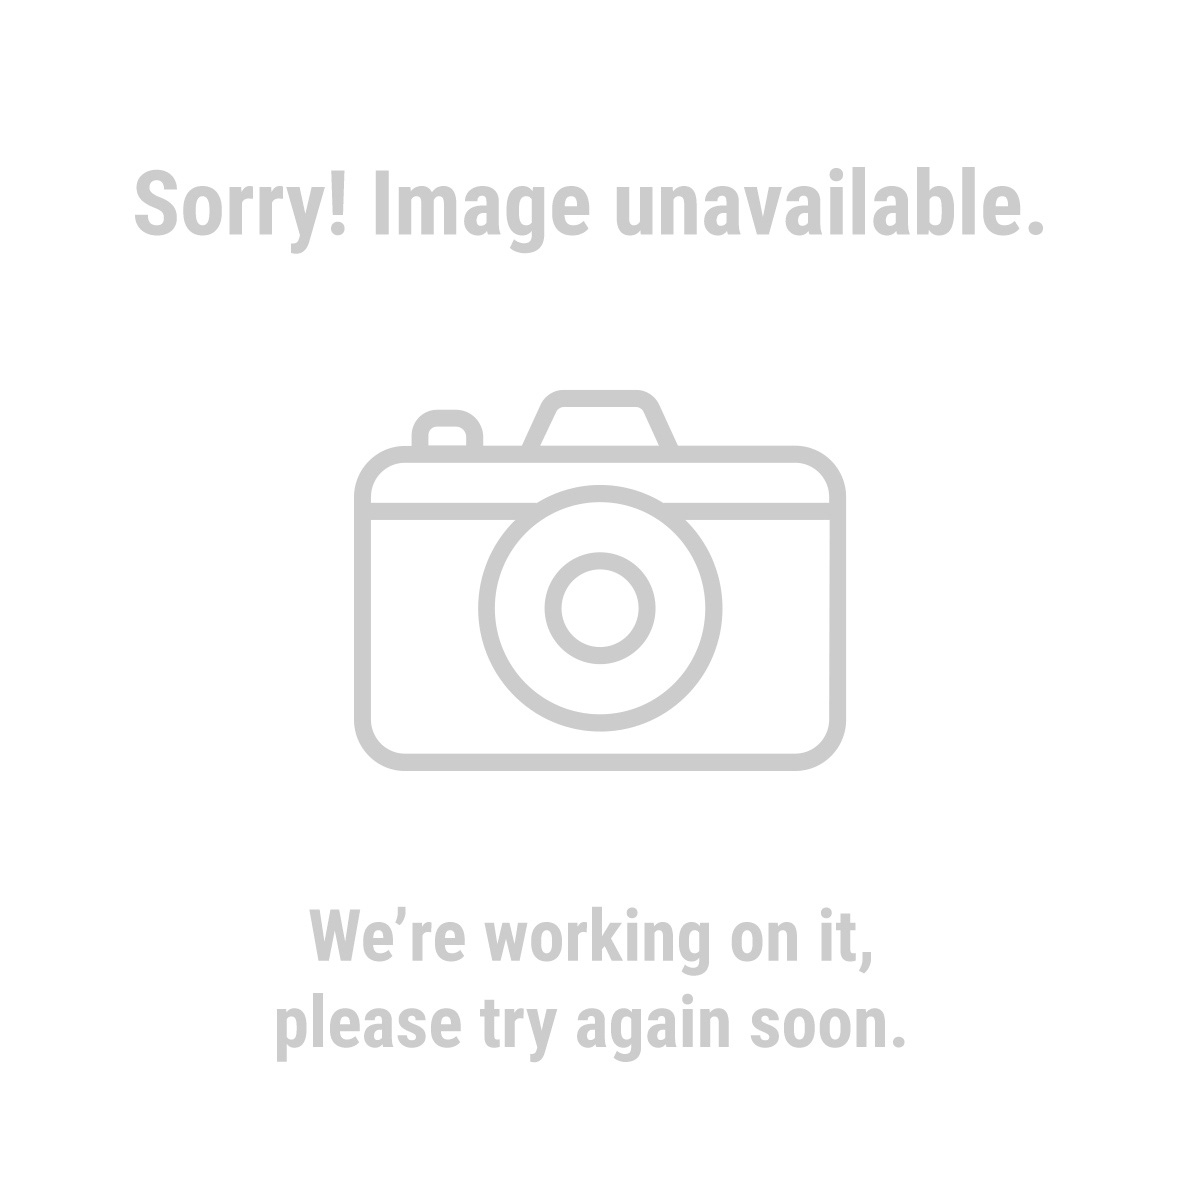 Pittsburgh 67143 Digital Mini Moisture Meter